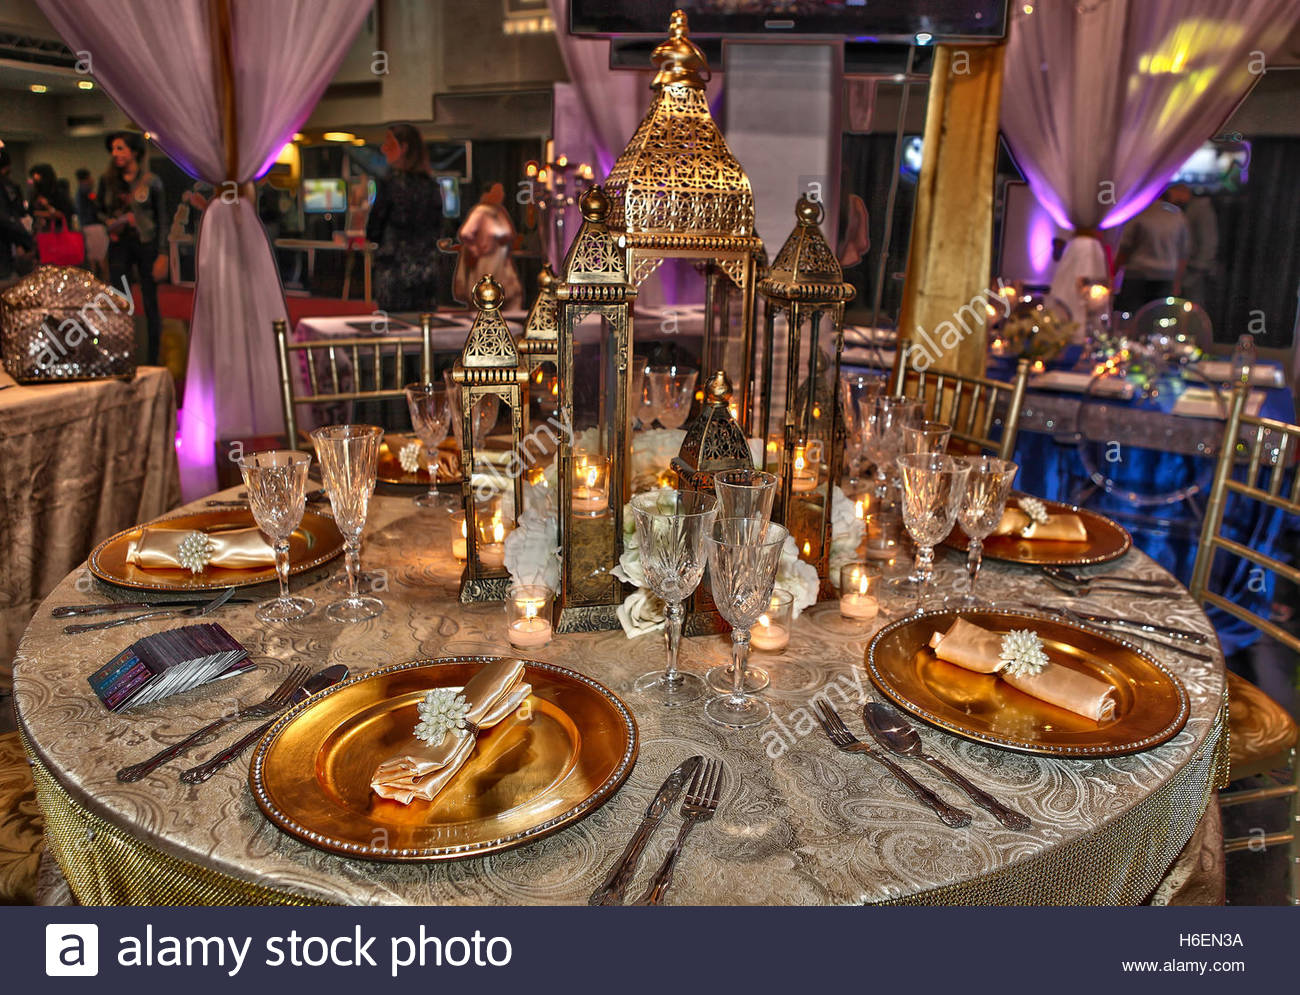 Elaborate table setting decorated with fancy napkins candles and lanterns. & Elaborate table setting decorated with fancy napkins candles and ...